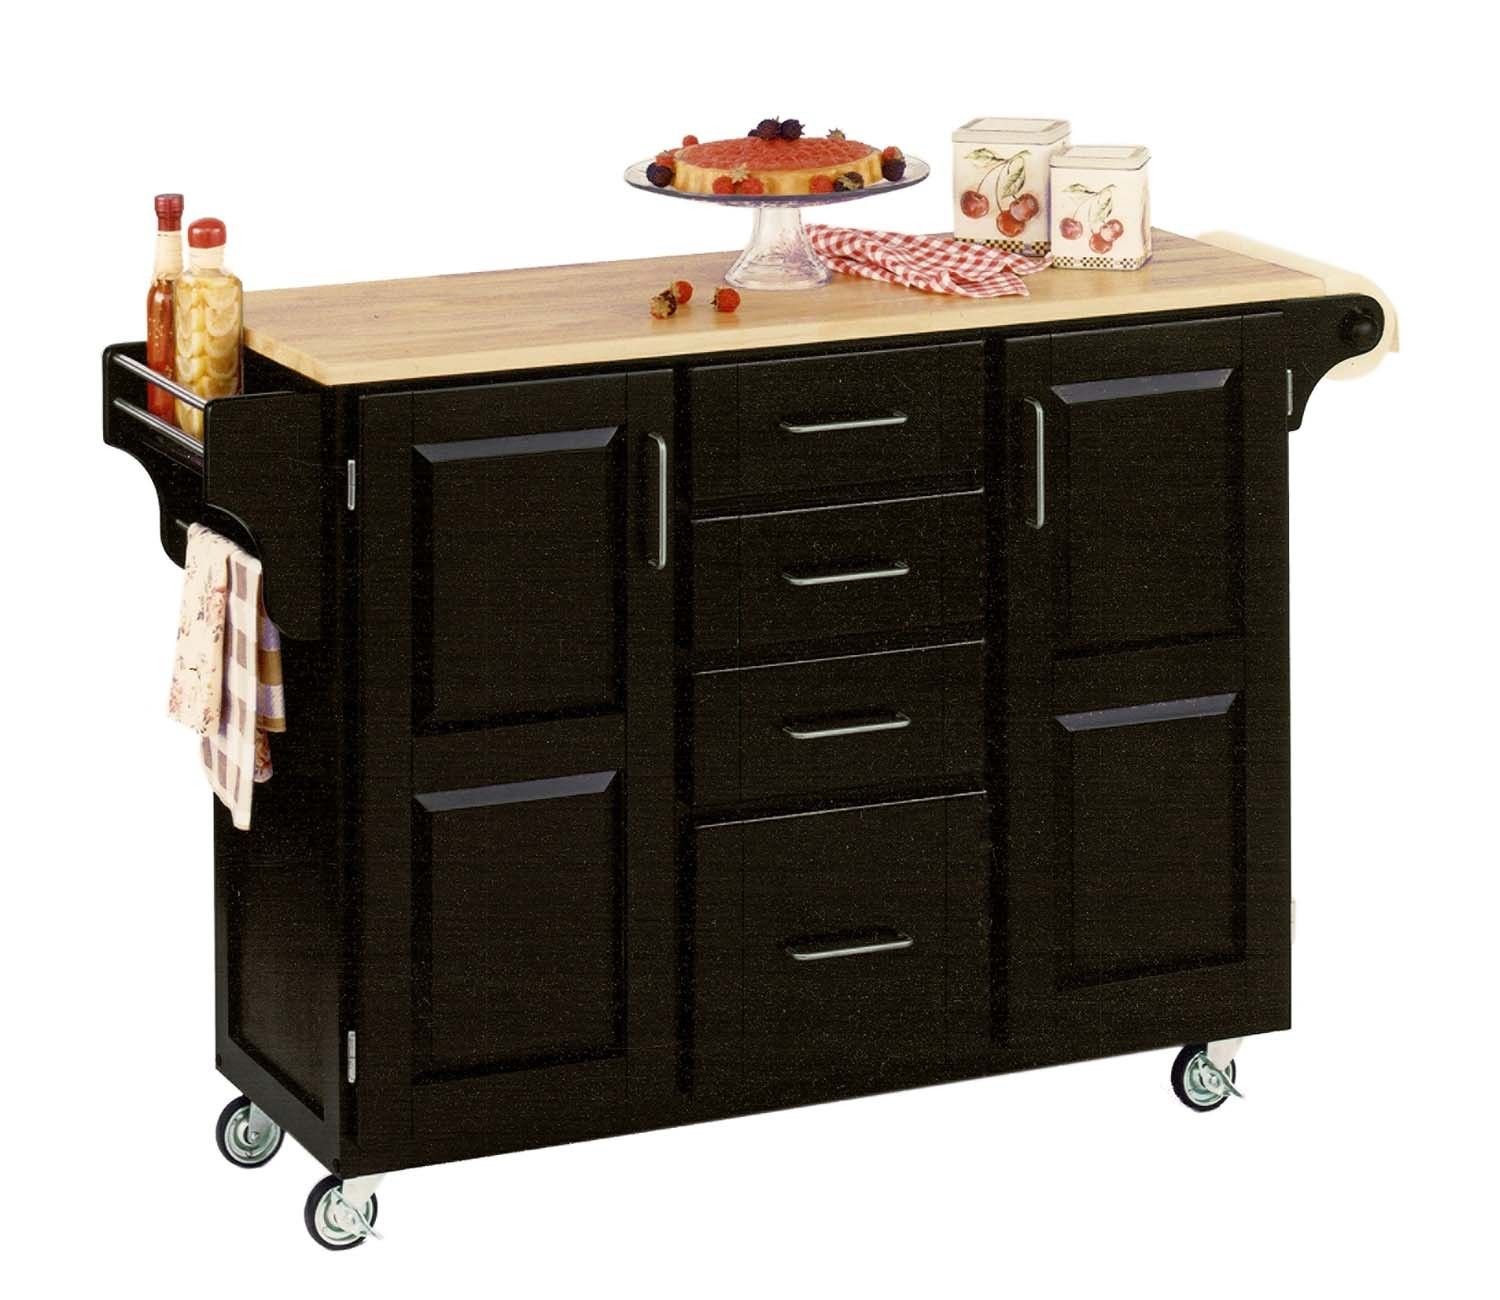 Kitchen Island Black Portable Kitchen Island With Drawers: Pin By Will Royall On For The Home